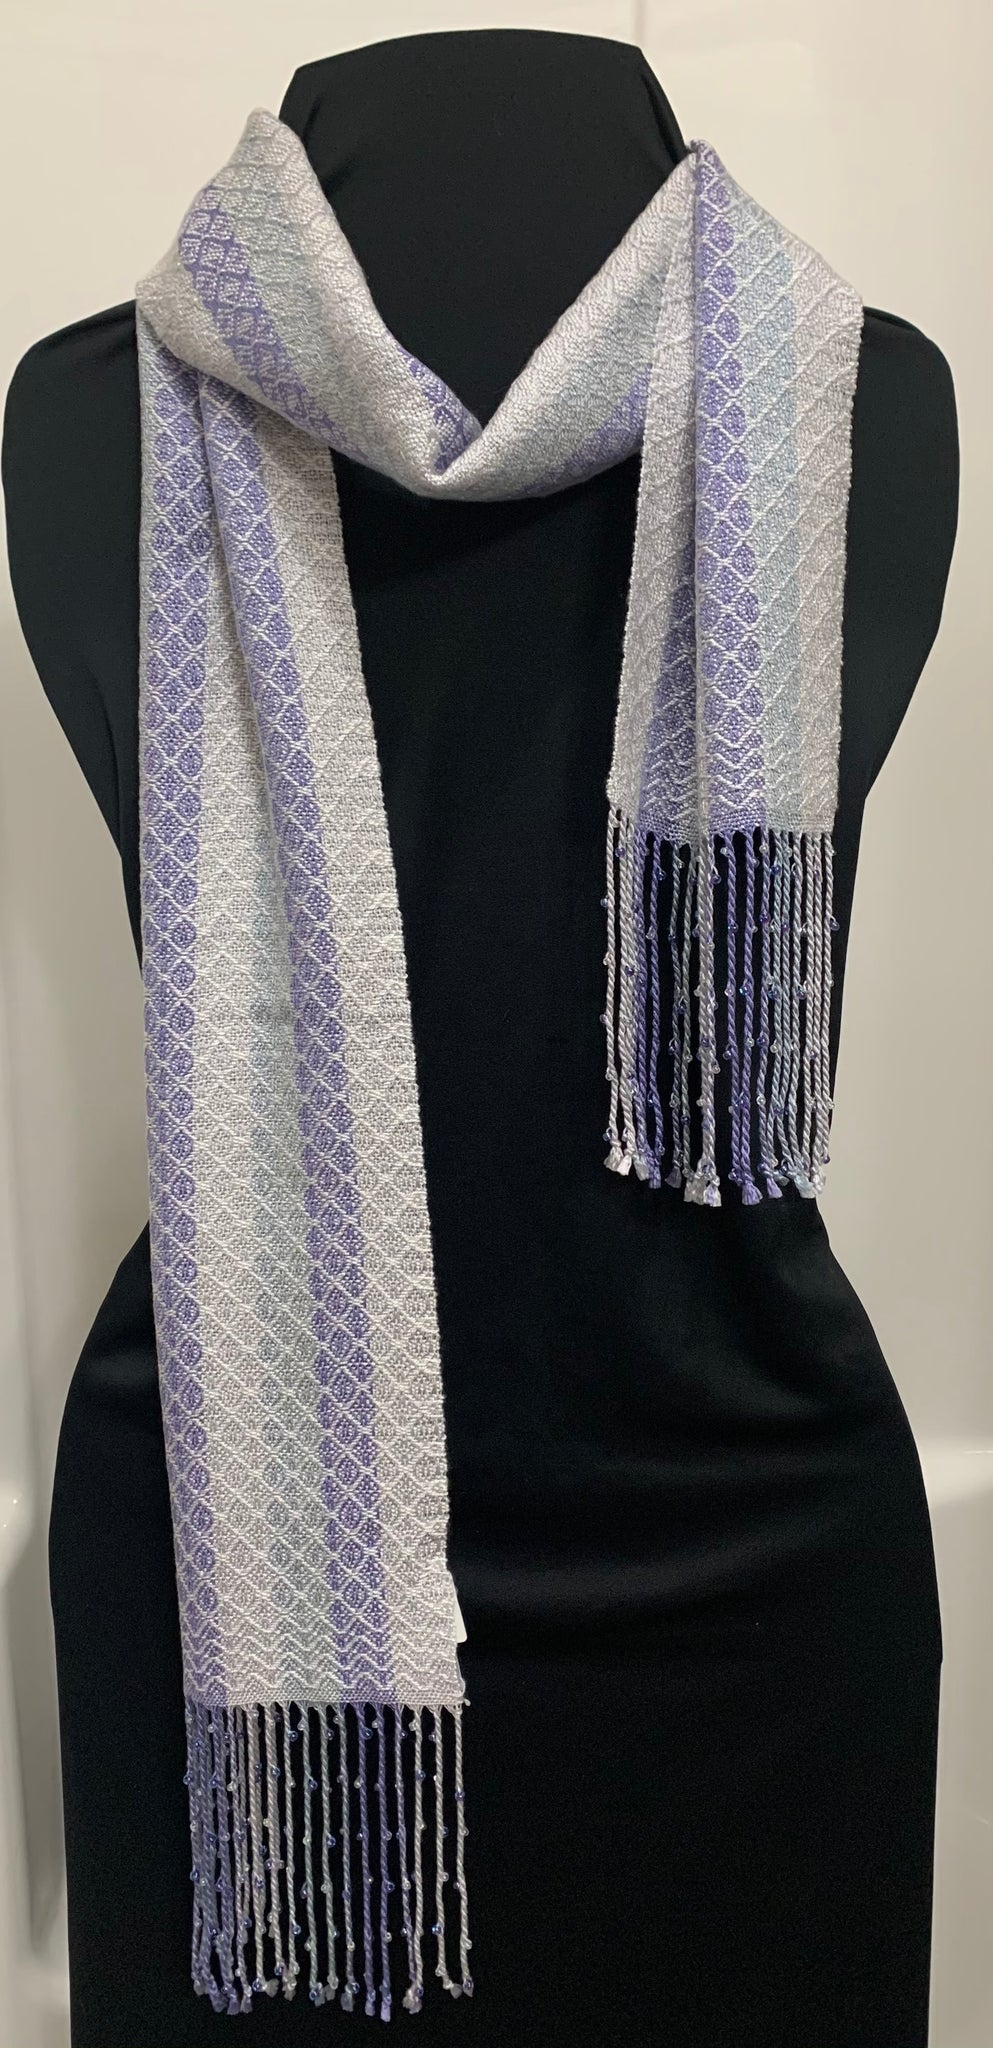 White Ovals Handwoven Dressy Tensel and Glass Beaded Scarf